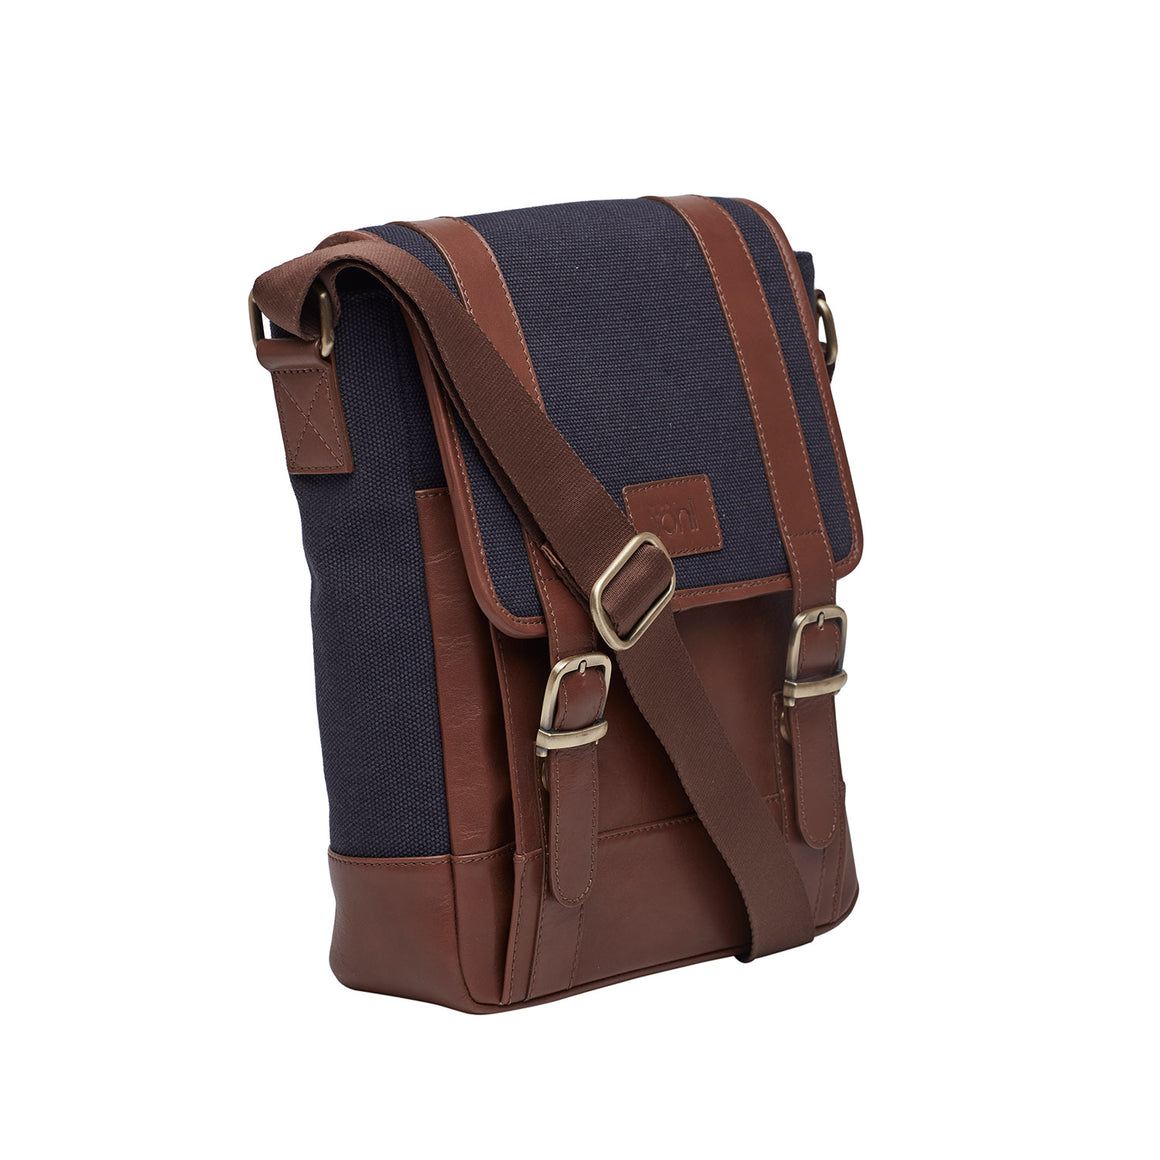 MS 0006 - TOHL PATRO MEN'S CROSSBODY & MESSENGER - NAVY